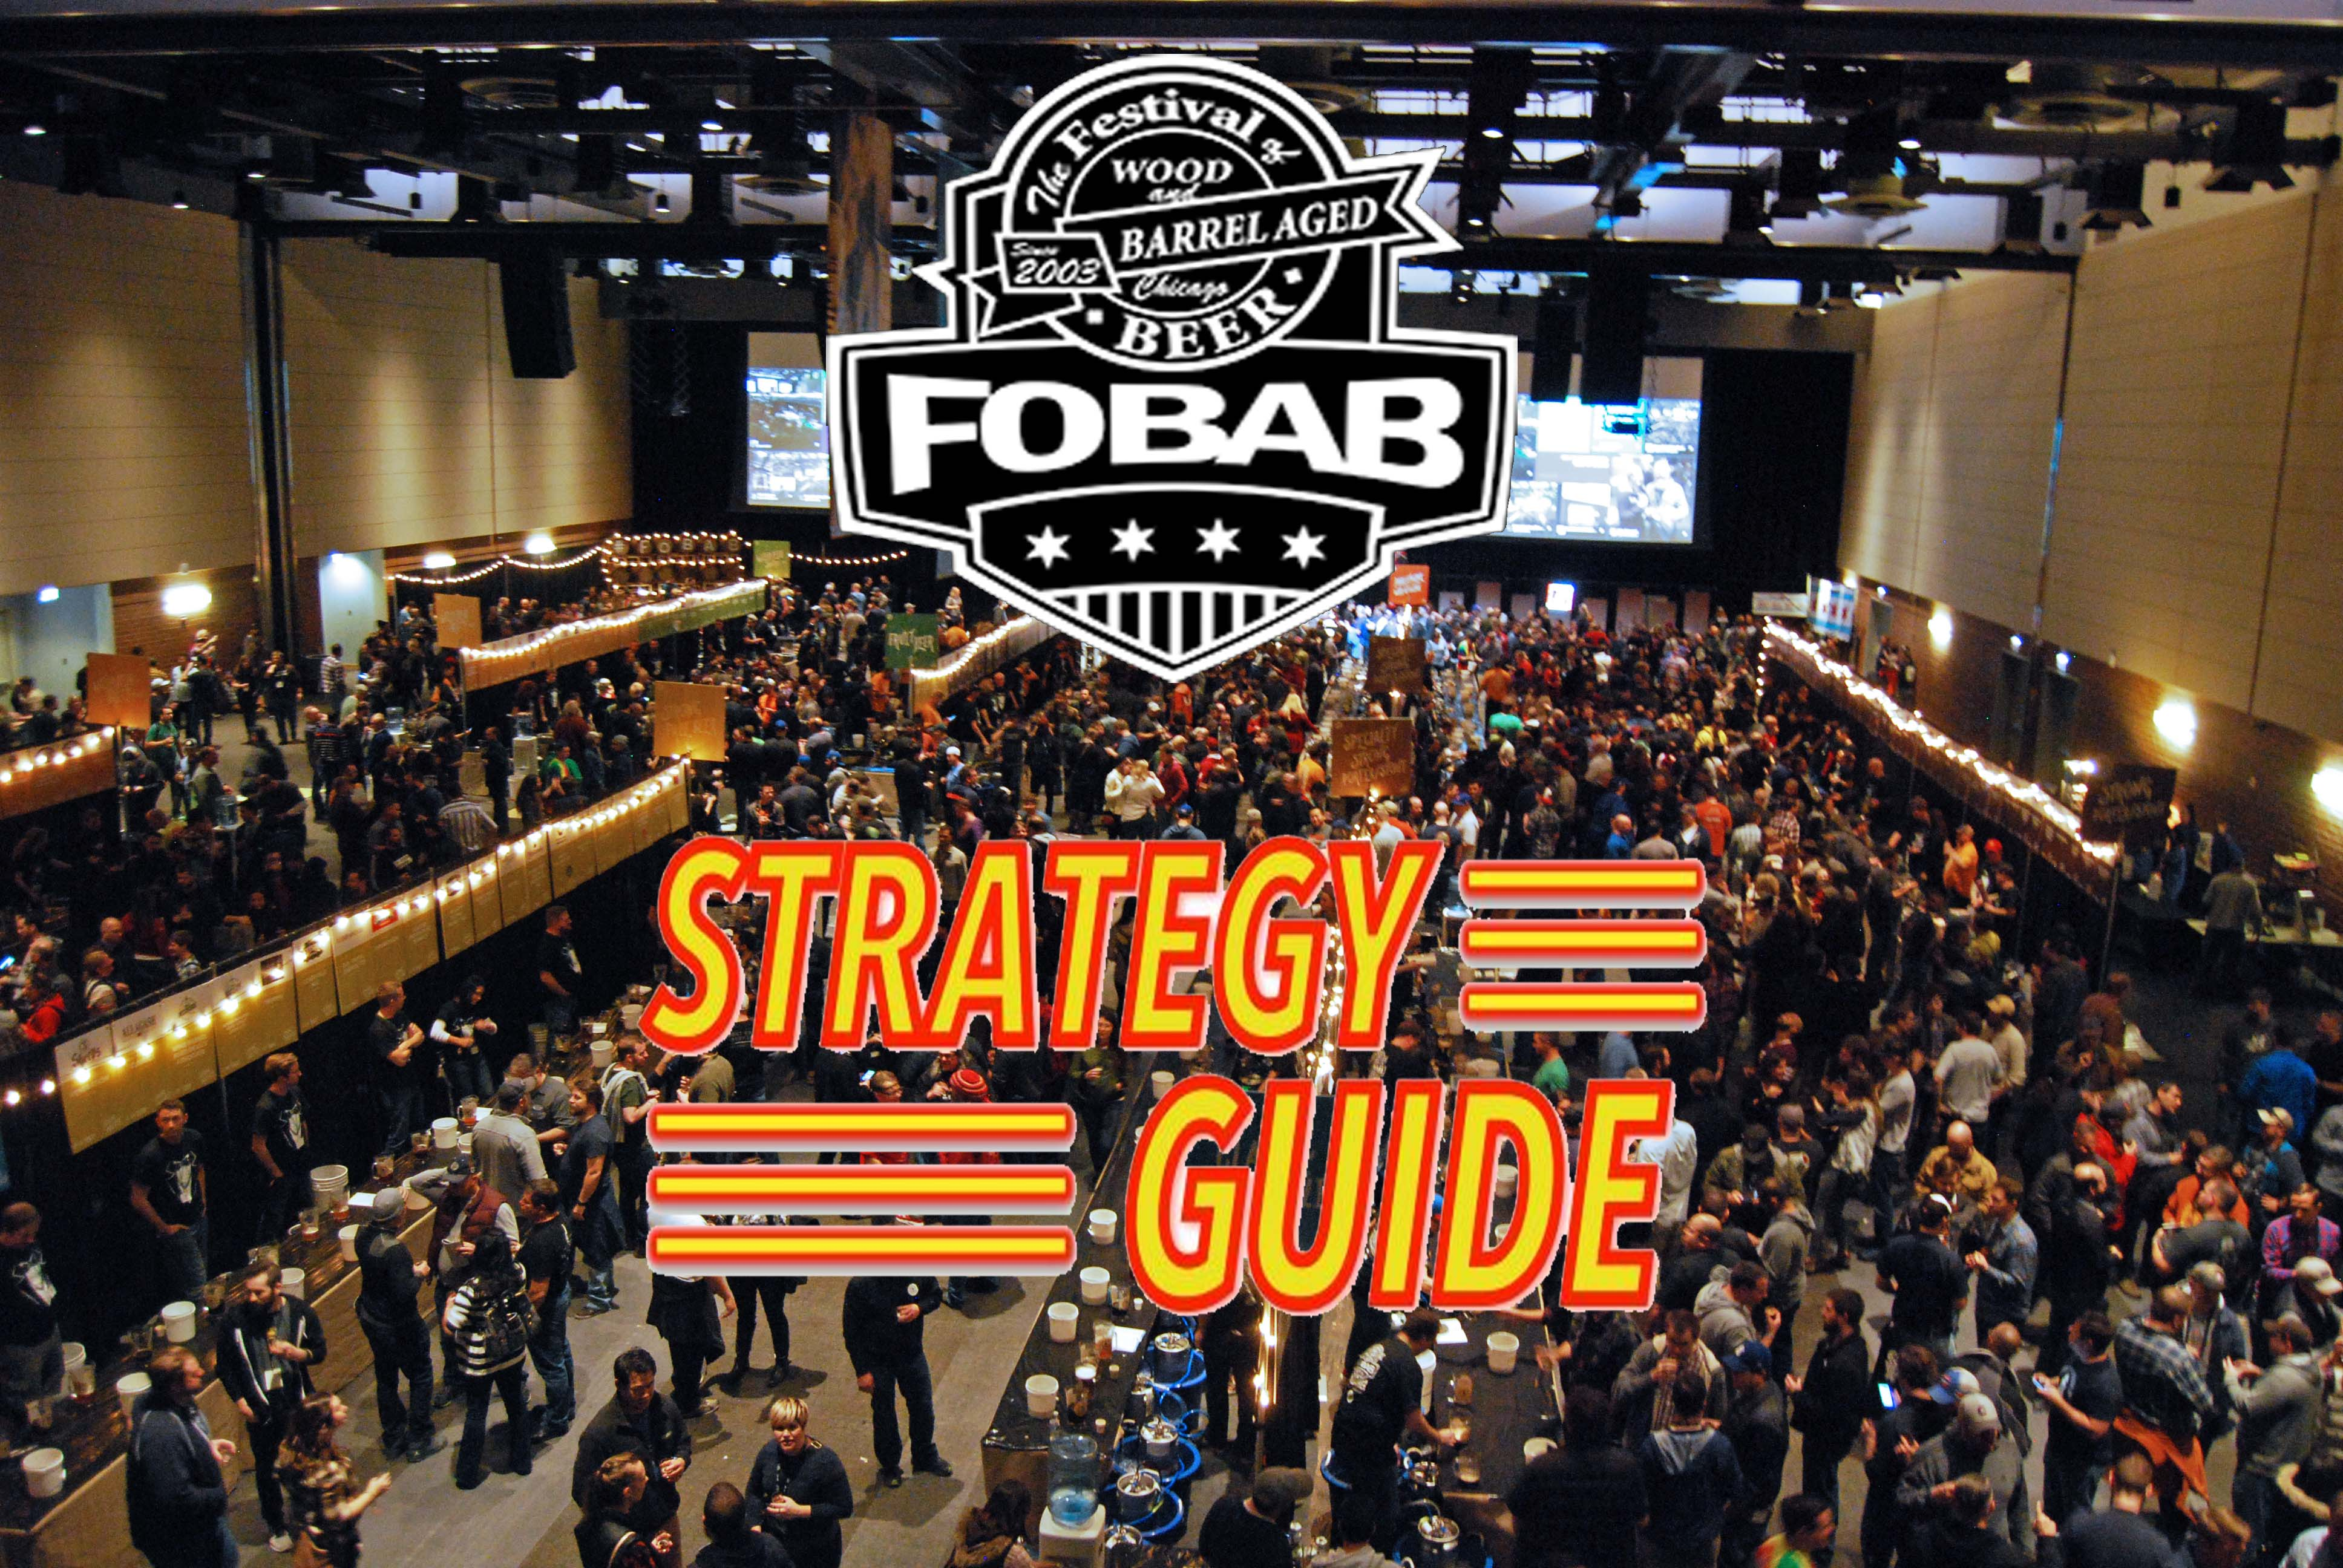 fobab strategy guide